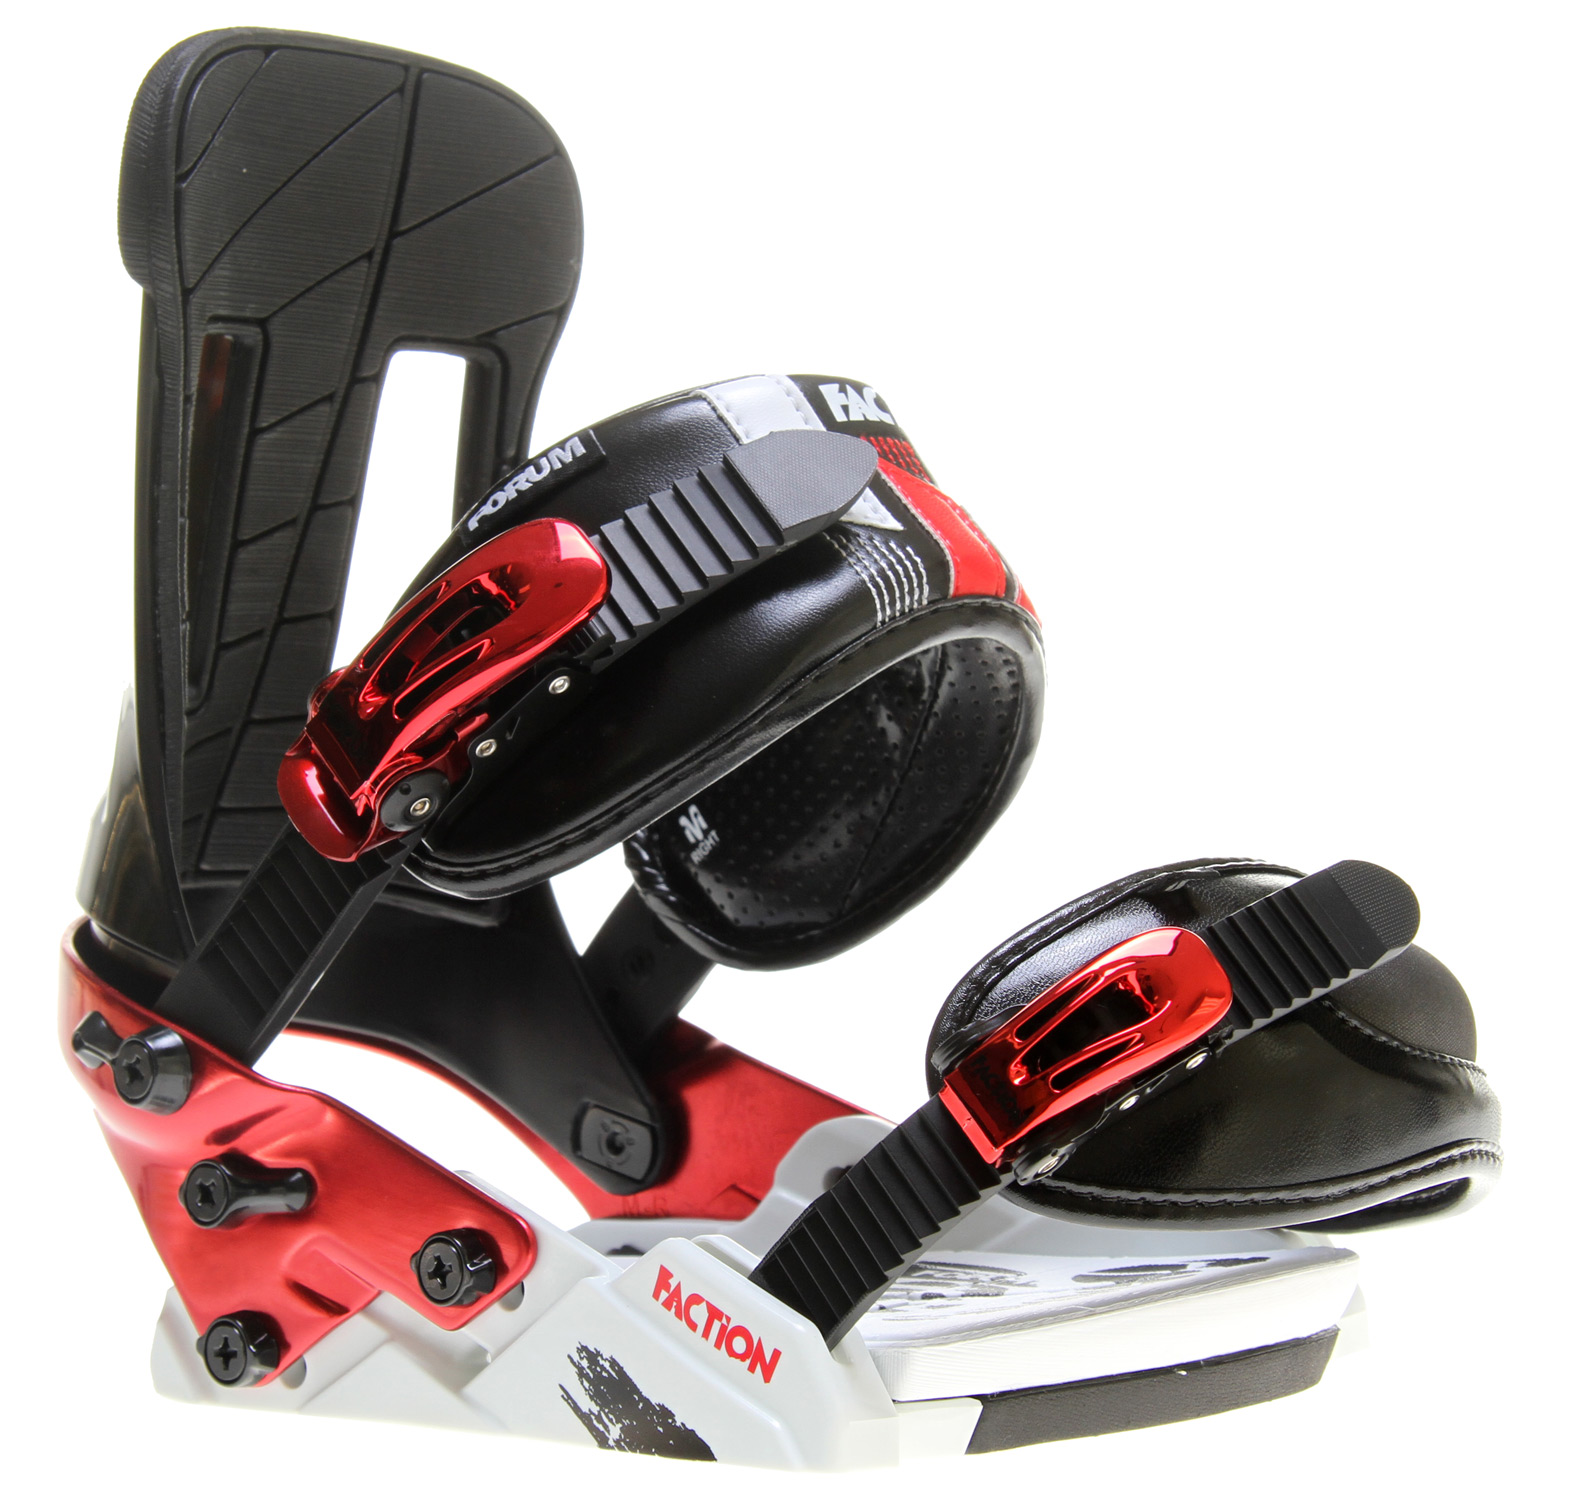 Snowboard Satis-Faction Bindings are arguably the most important part of your setup, so why settle for less? The Forum Faction has everything you need to improve your park riding. Most importantly, our Good Vibes Hinge Disk and Split baseplate, allow your board to flex naturally underfoot giving you more freestyle feel. To boot, the Faction is offered at a price that won't break the bank. This is true satisfaction. This is the Faction. Key Features of the Forum Faction Snowboard Bindings: Disk: Good Vibes Hinge Disk Comfort: Good Vibes EVA footpad Ankle Strap: Bubbler Toe Strap: Throwdown cap Baseplate Material: 30% glass-filled nylon with aircraft-grade aluminum heelhoop Feel 4 - $103.95